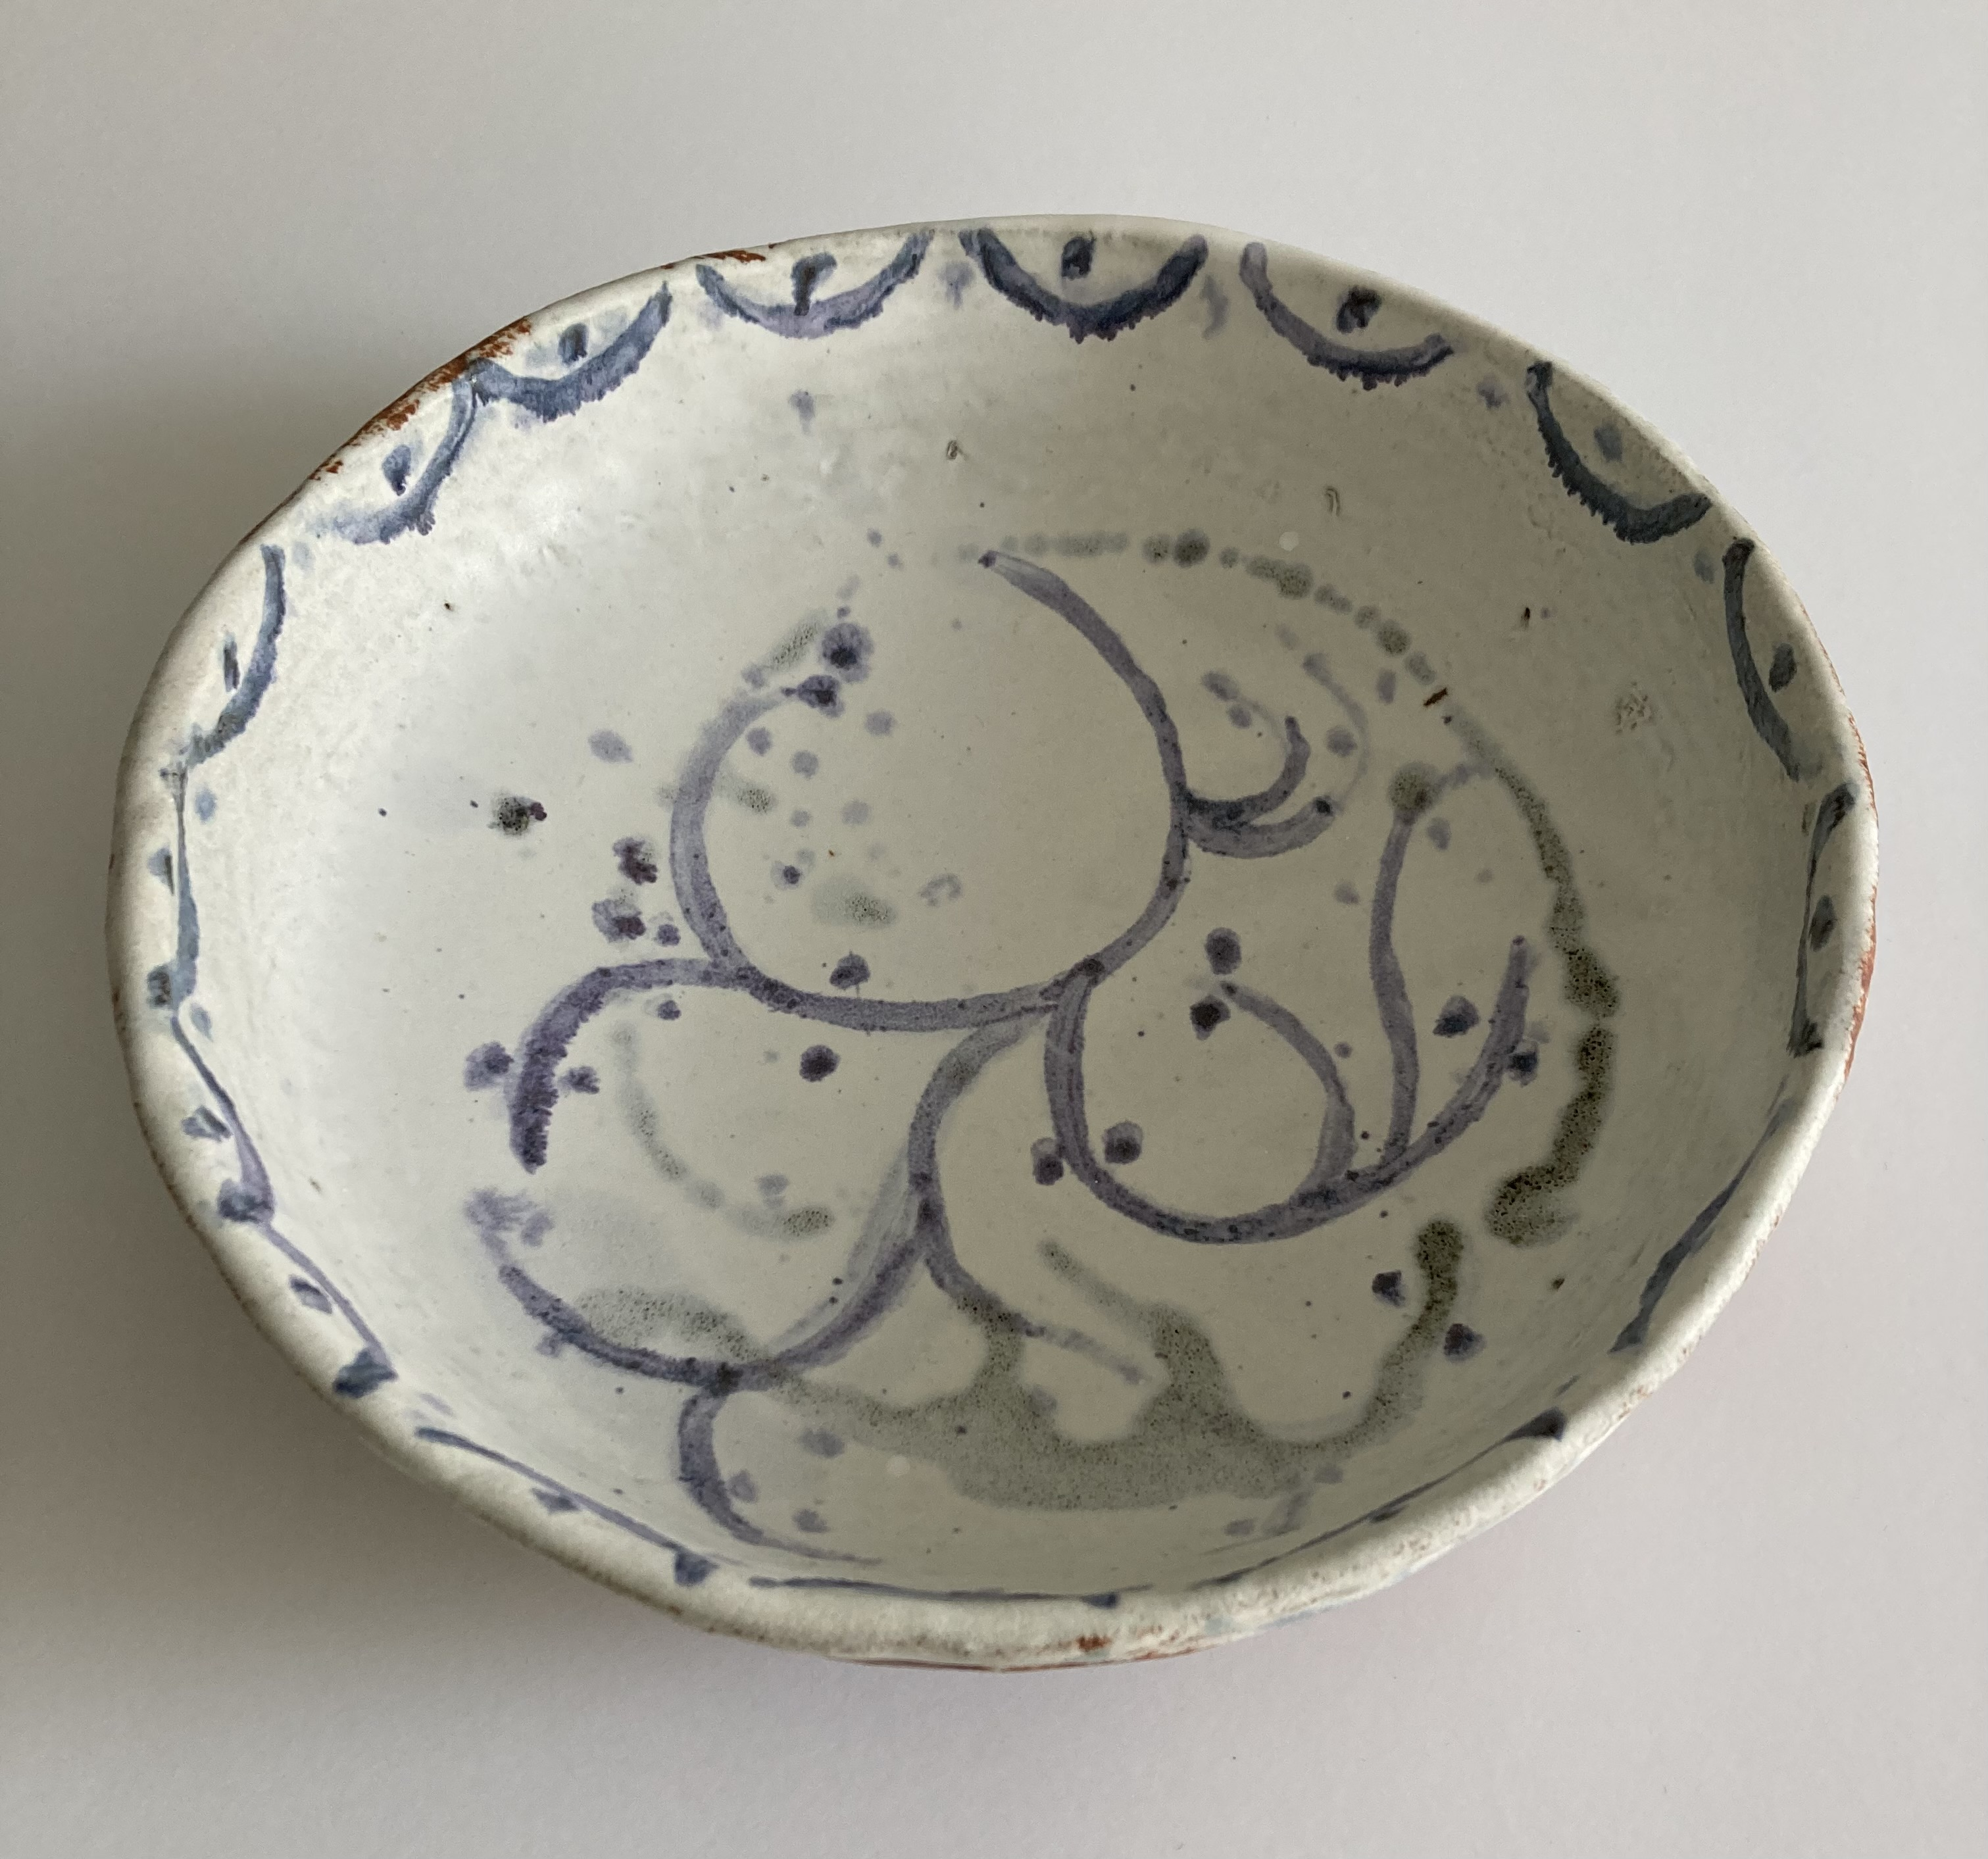 'Windswept' Bowl by Claire Finlay